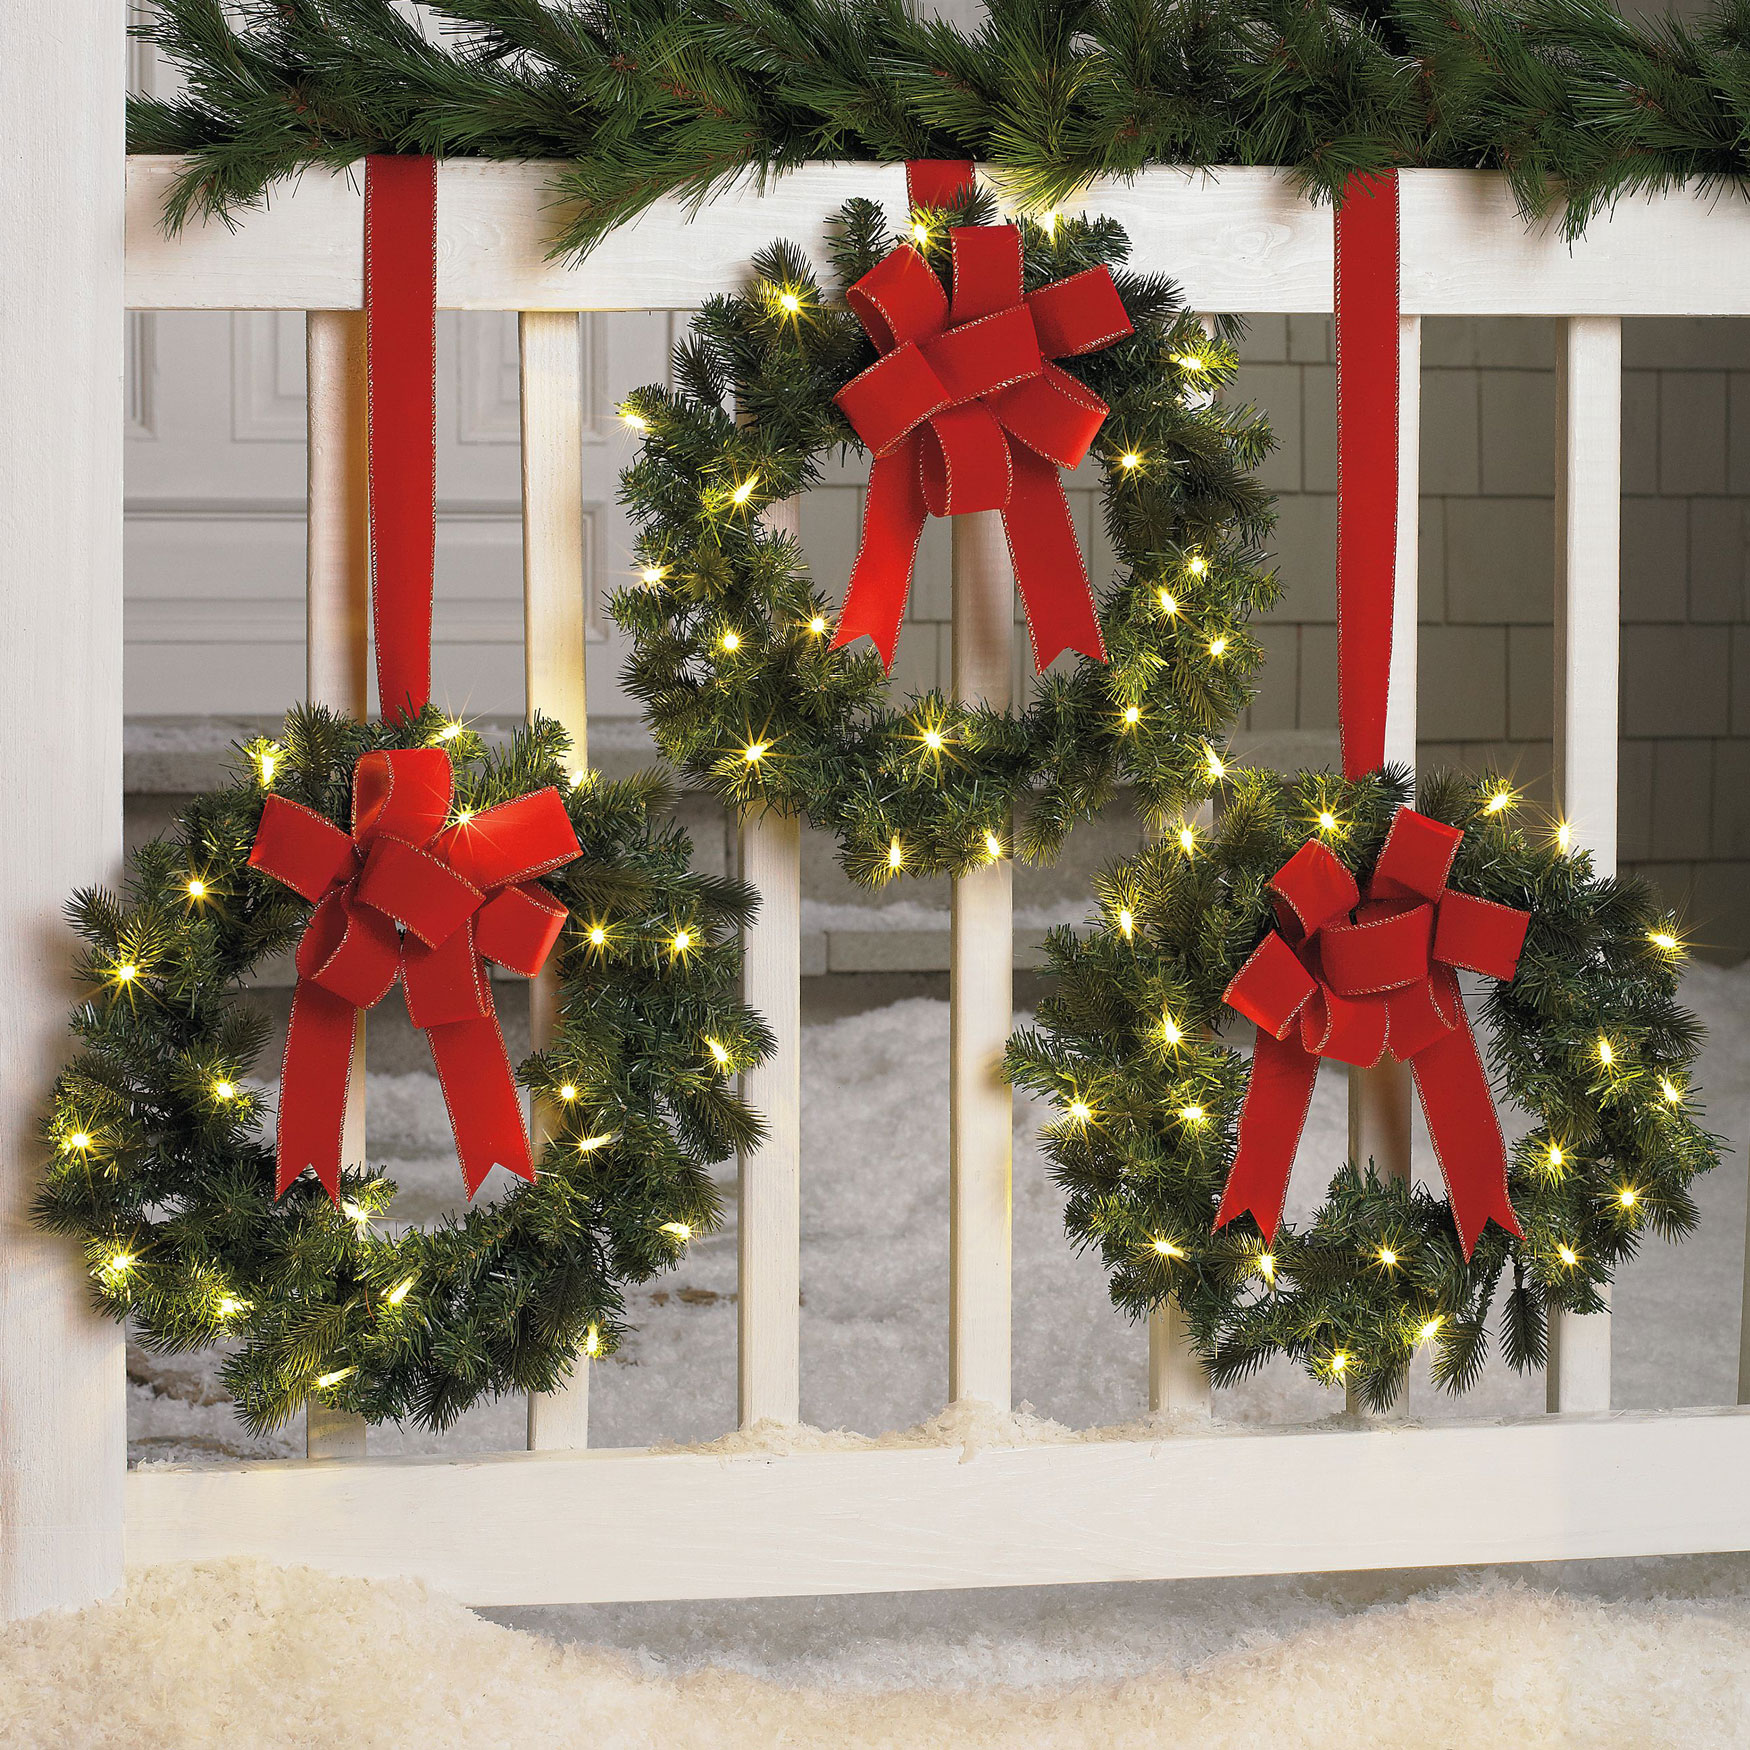 Outdoor Christmas Decorations: 50 Best Outdoor Christmas Decorations For 2018